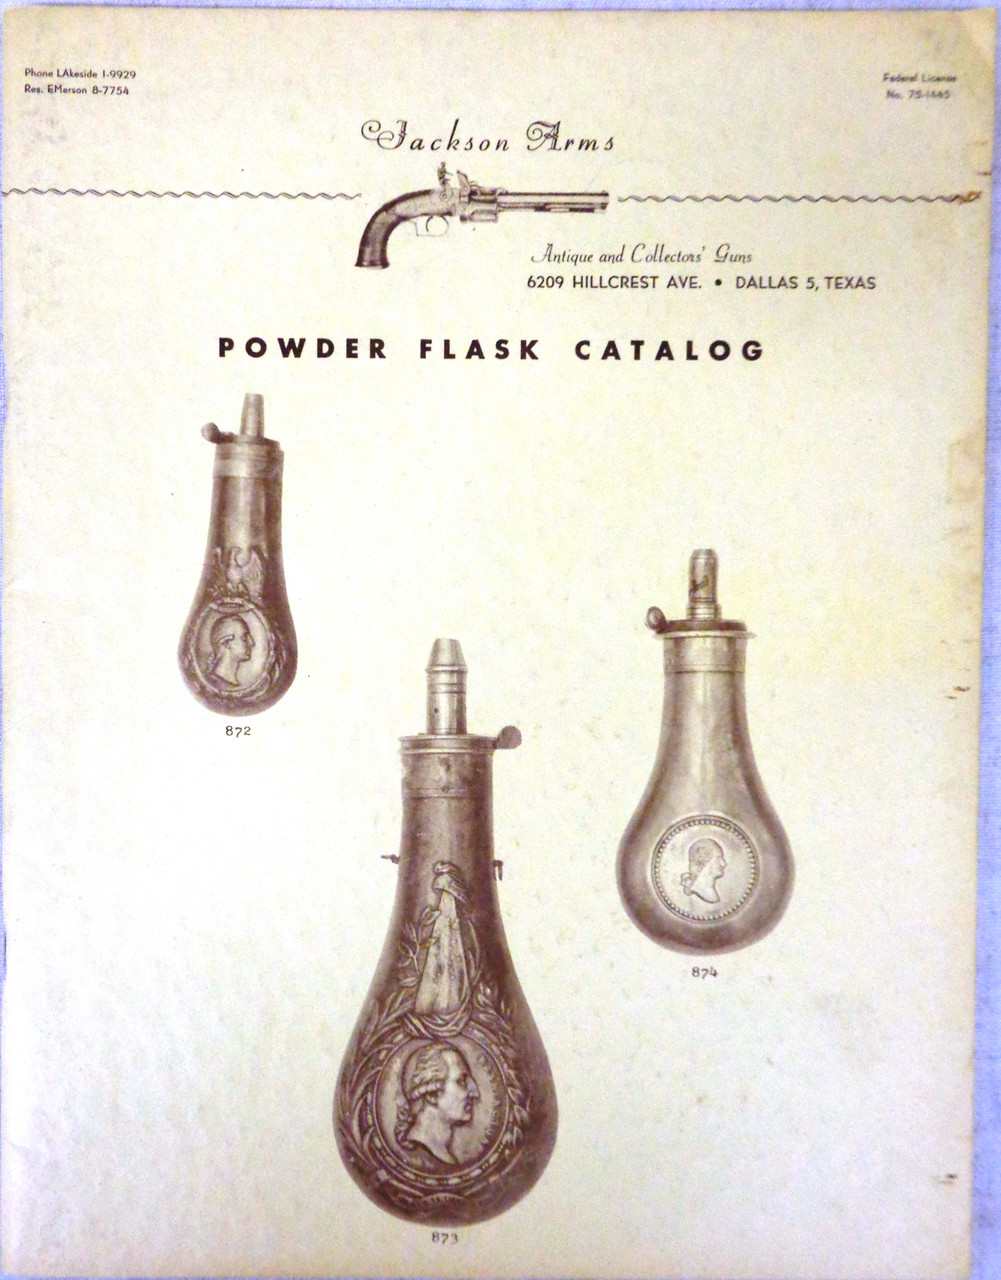 Jackson Arms Powder Flask Catalog circa Late 1950's or Early 1960's